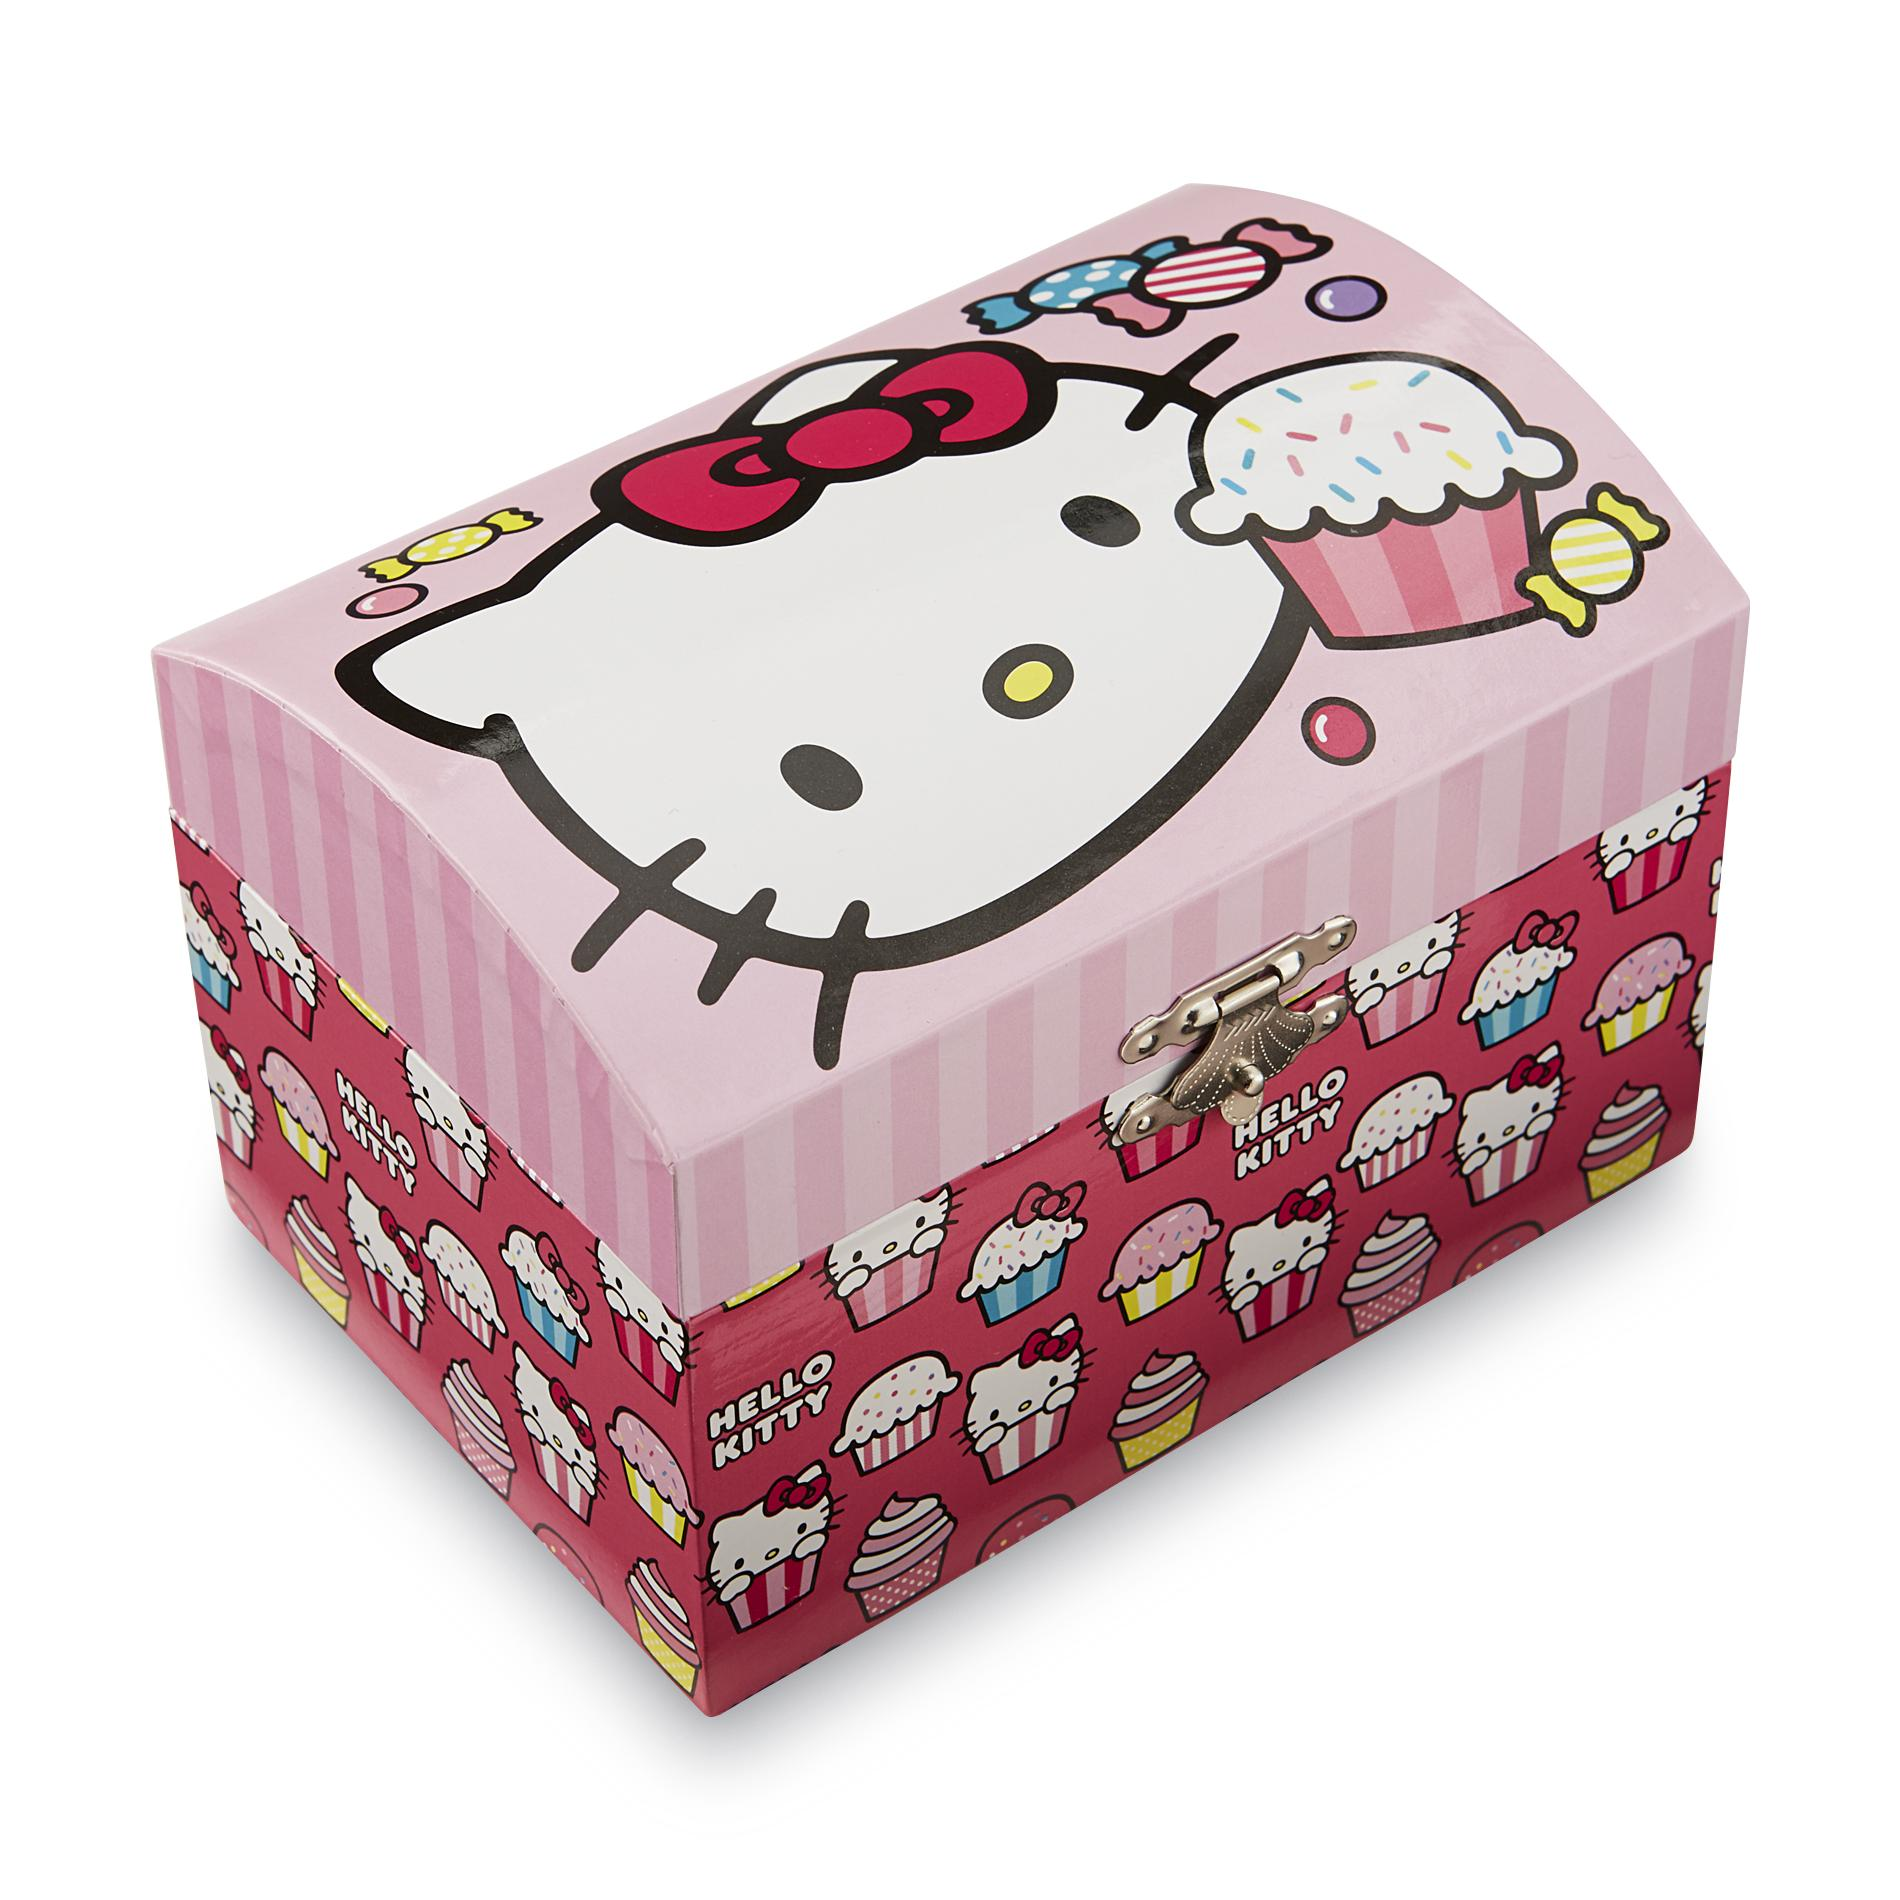 Cupcake Boxes Kmart Hello Kitty Girl 39s Musical Jewelry Box